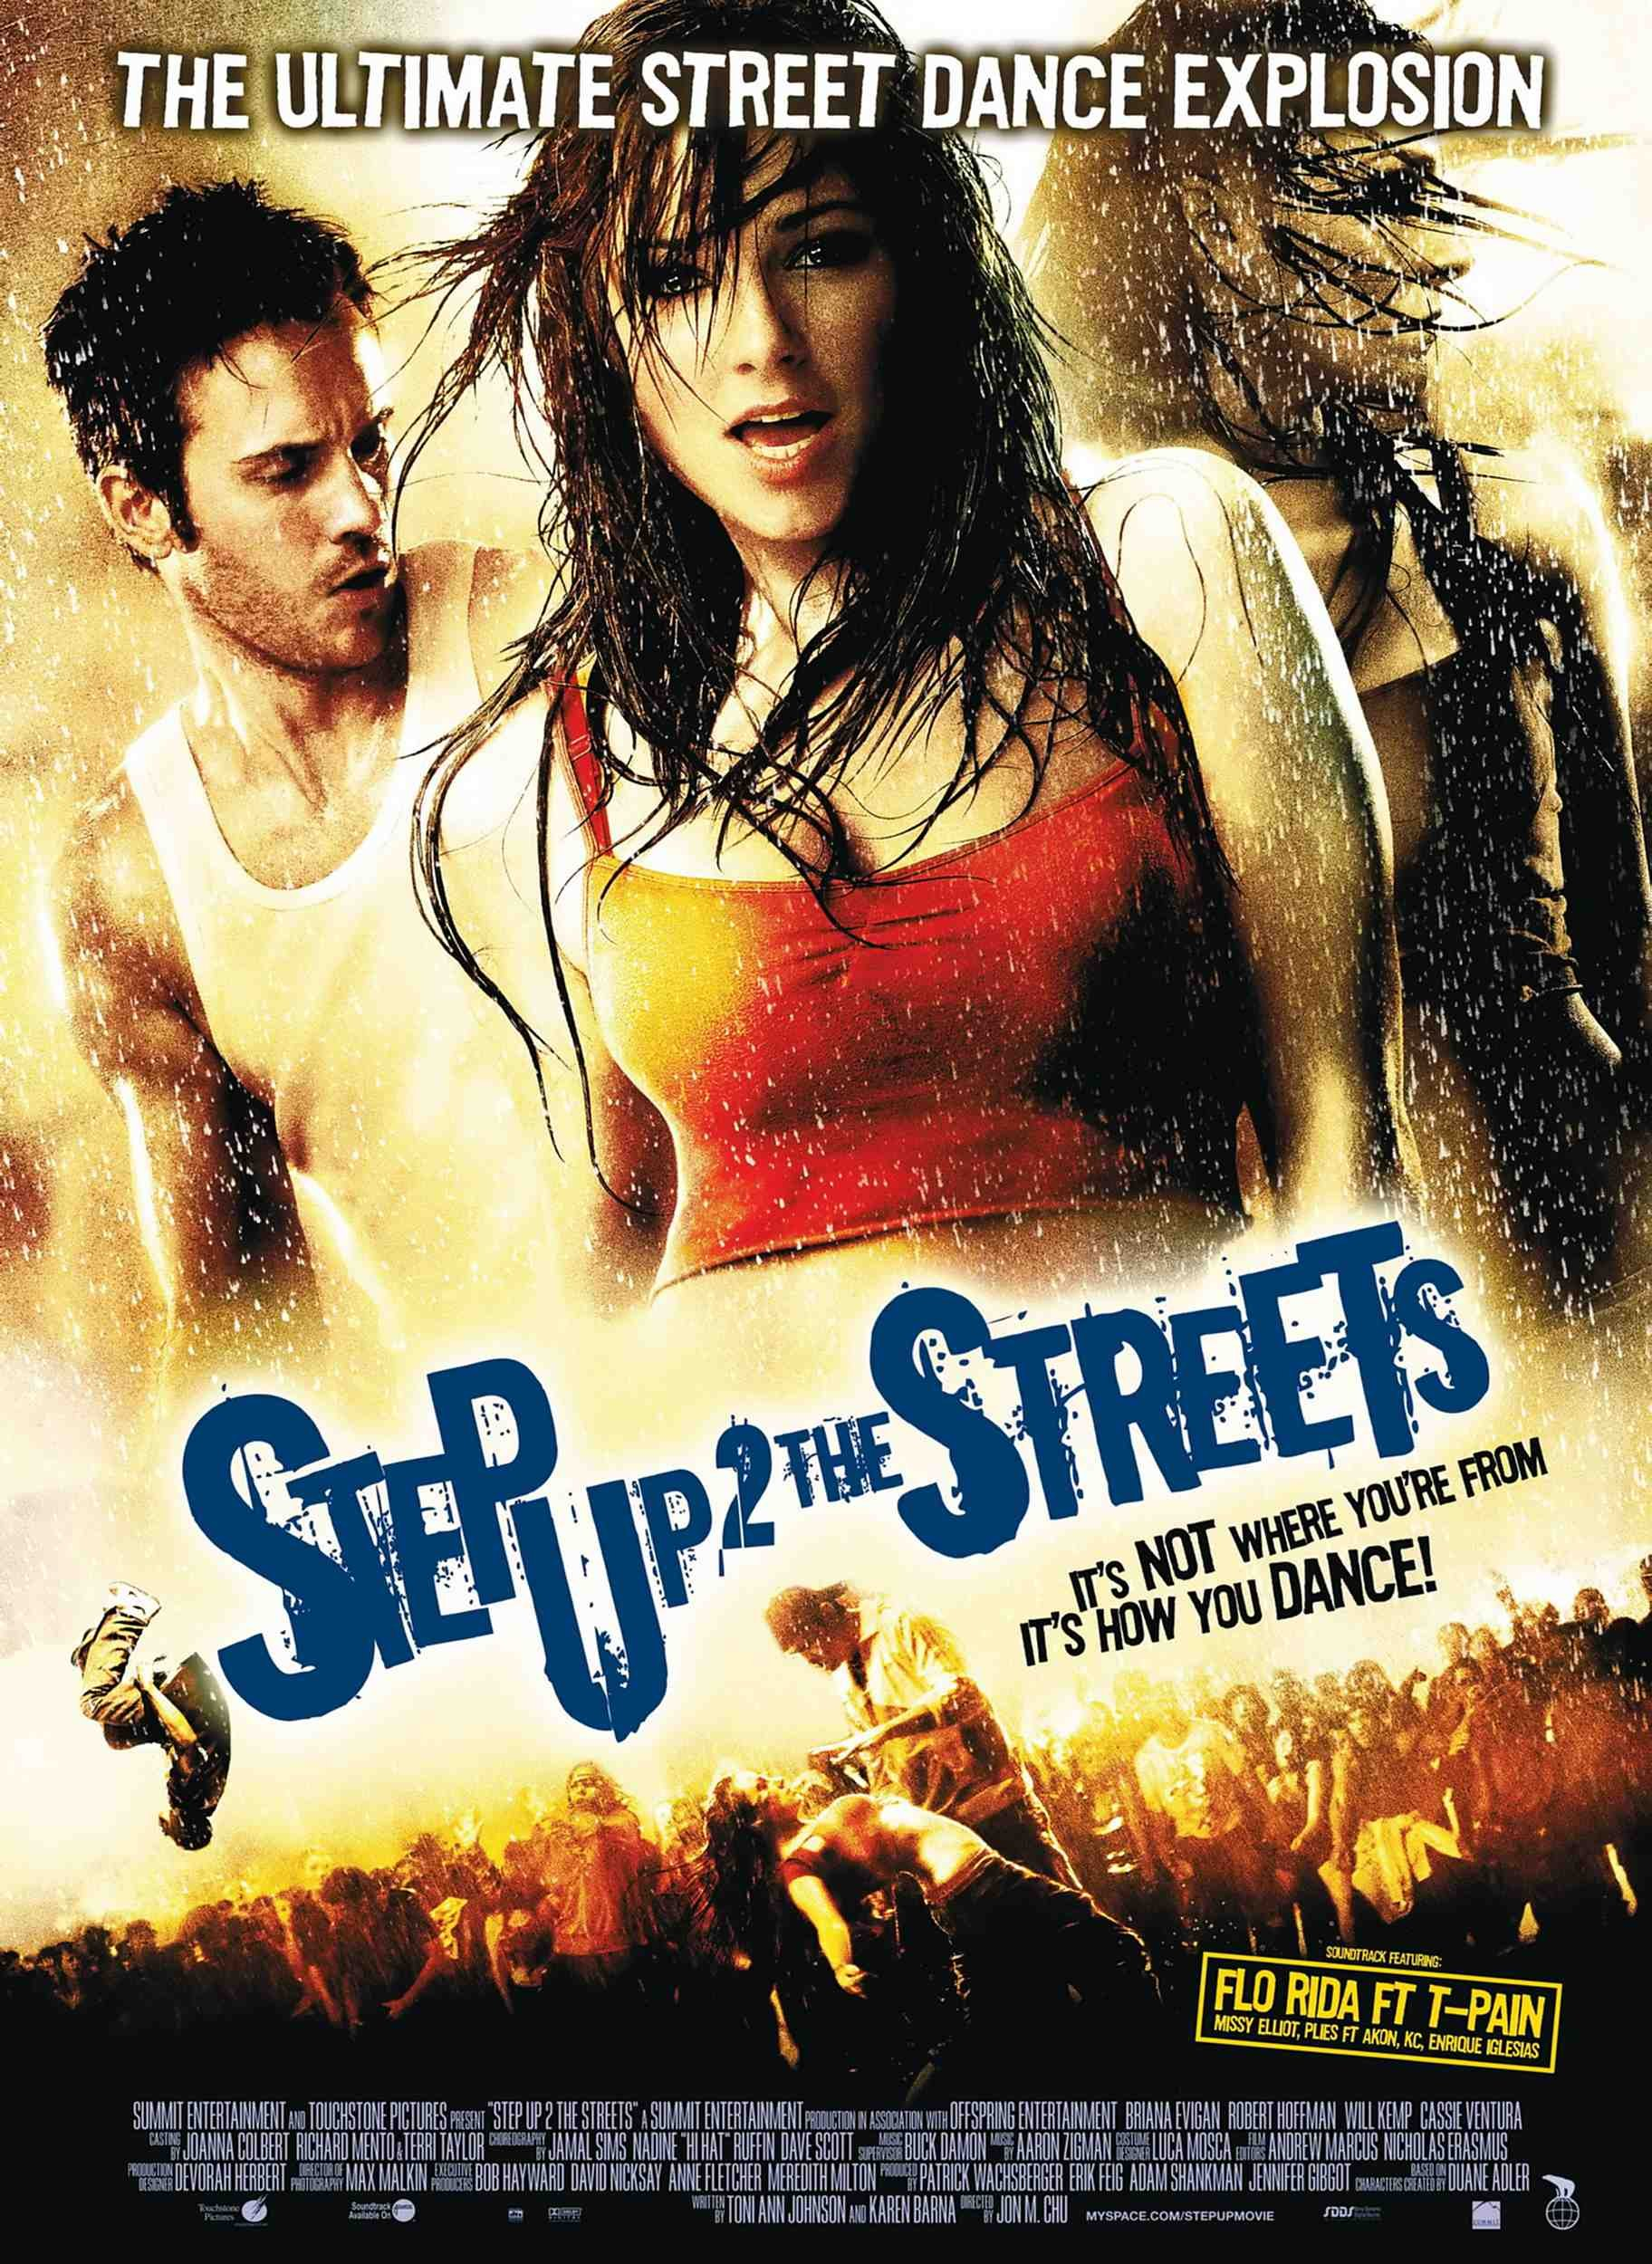 step_up_2_the_streets_2008_5083_poster.jpg